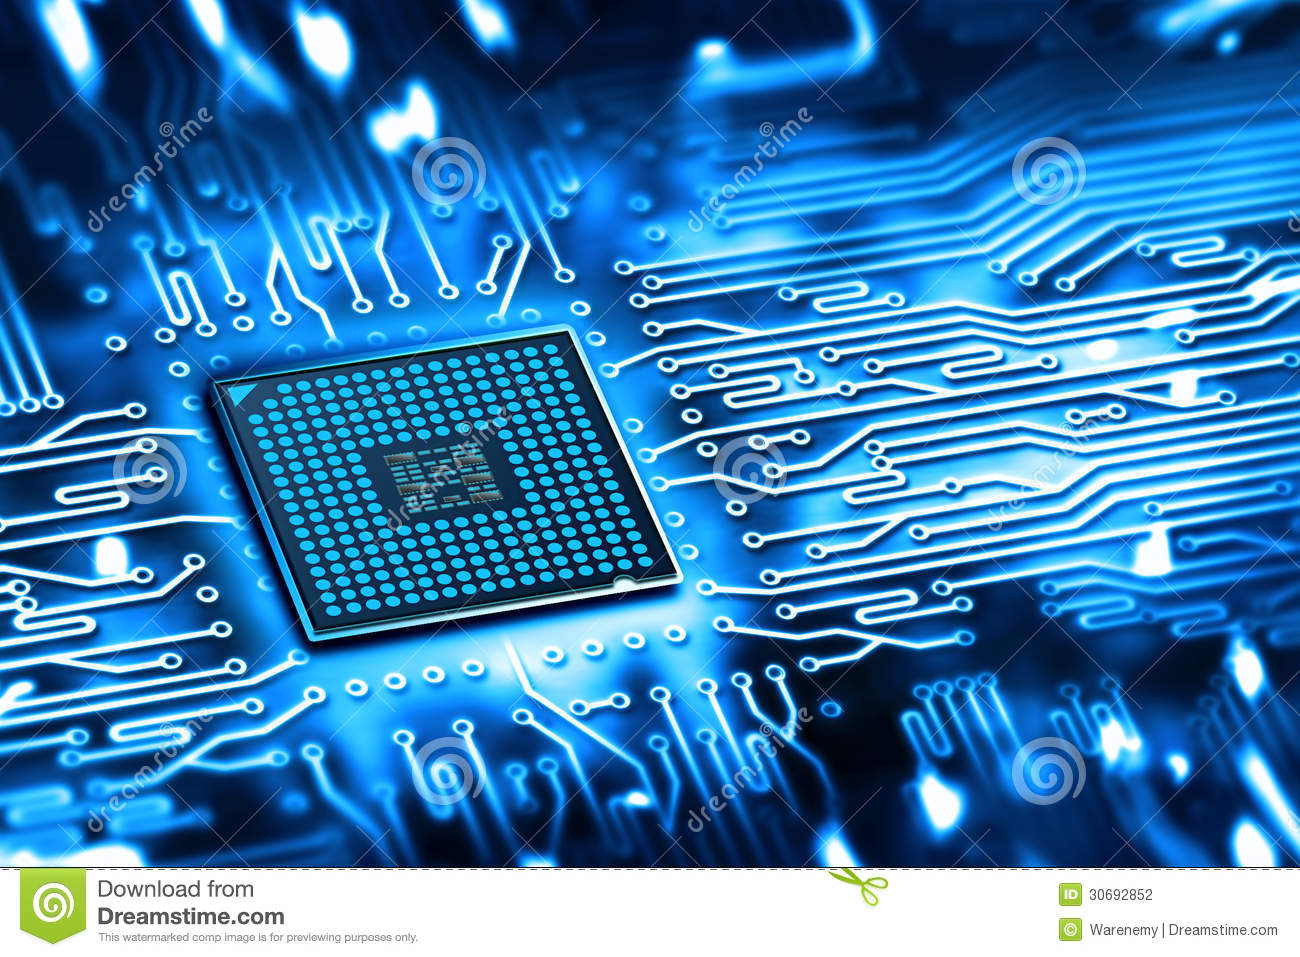 how to change microchip information